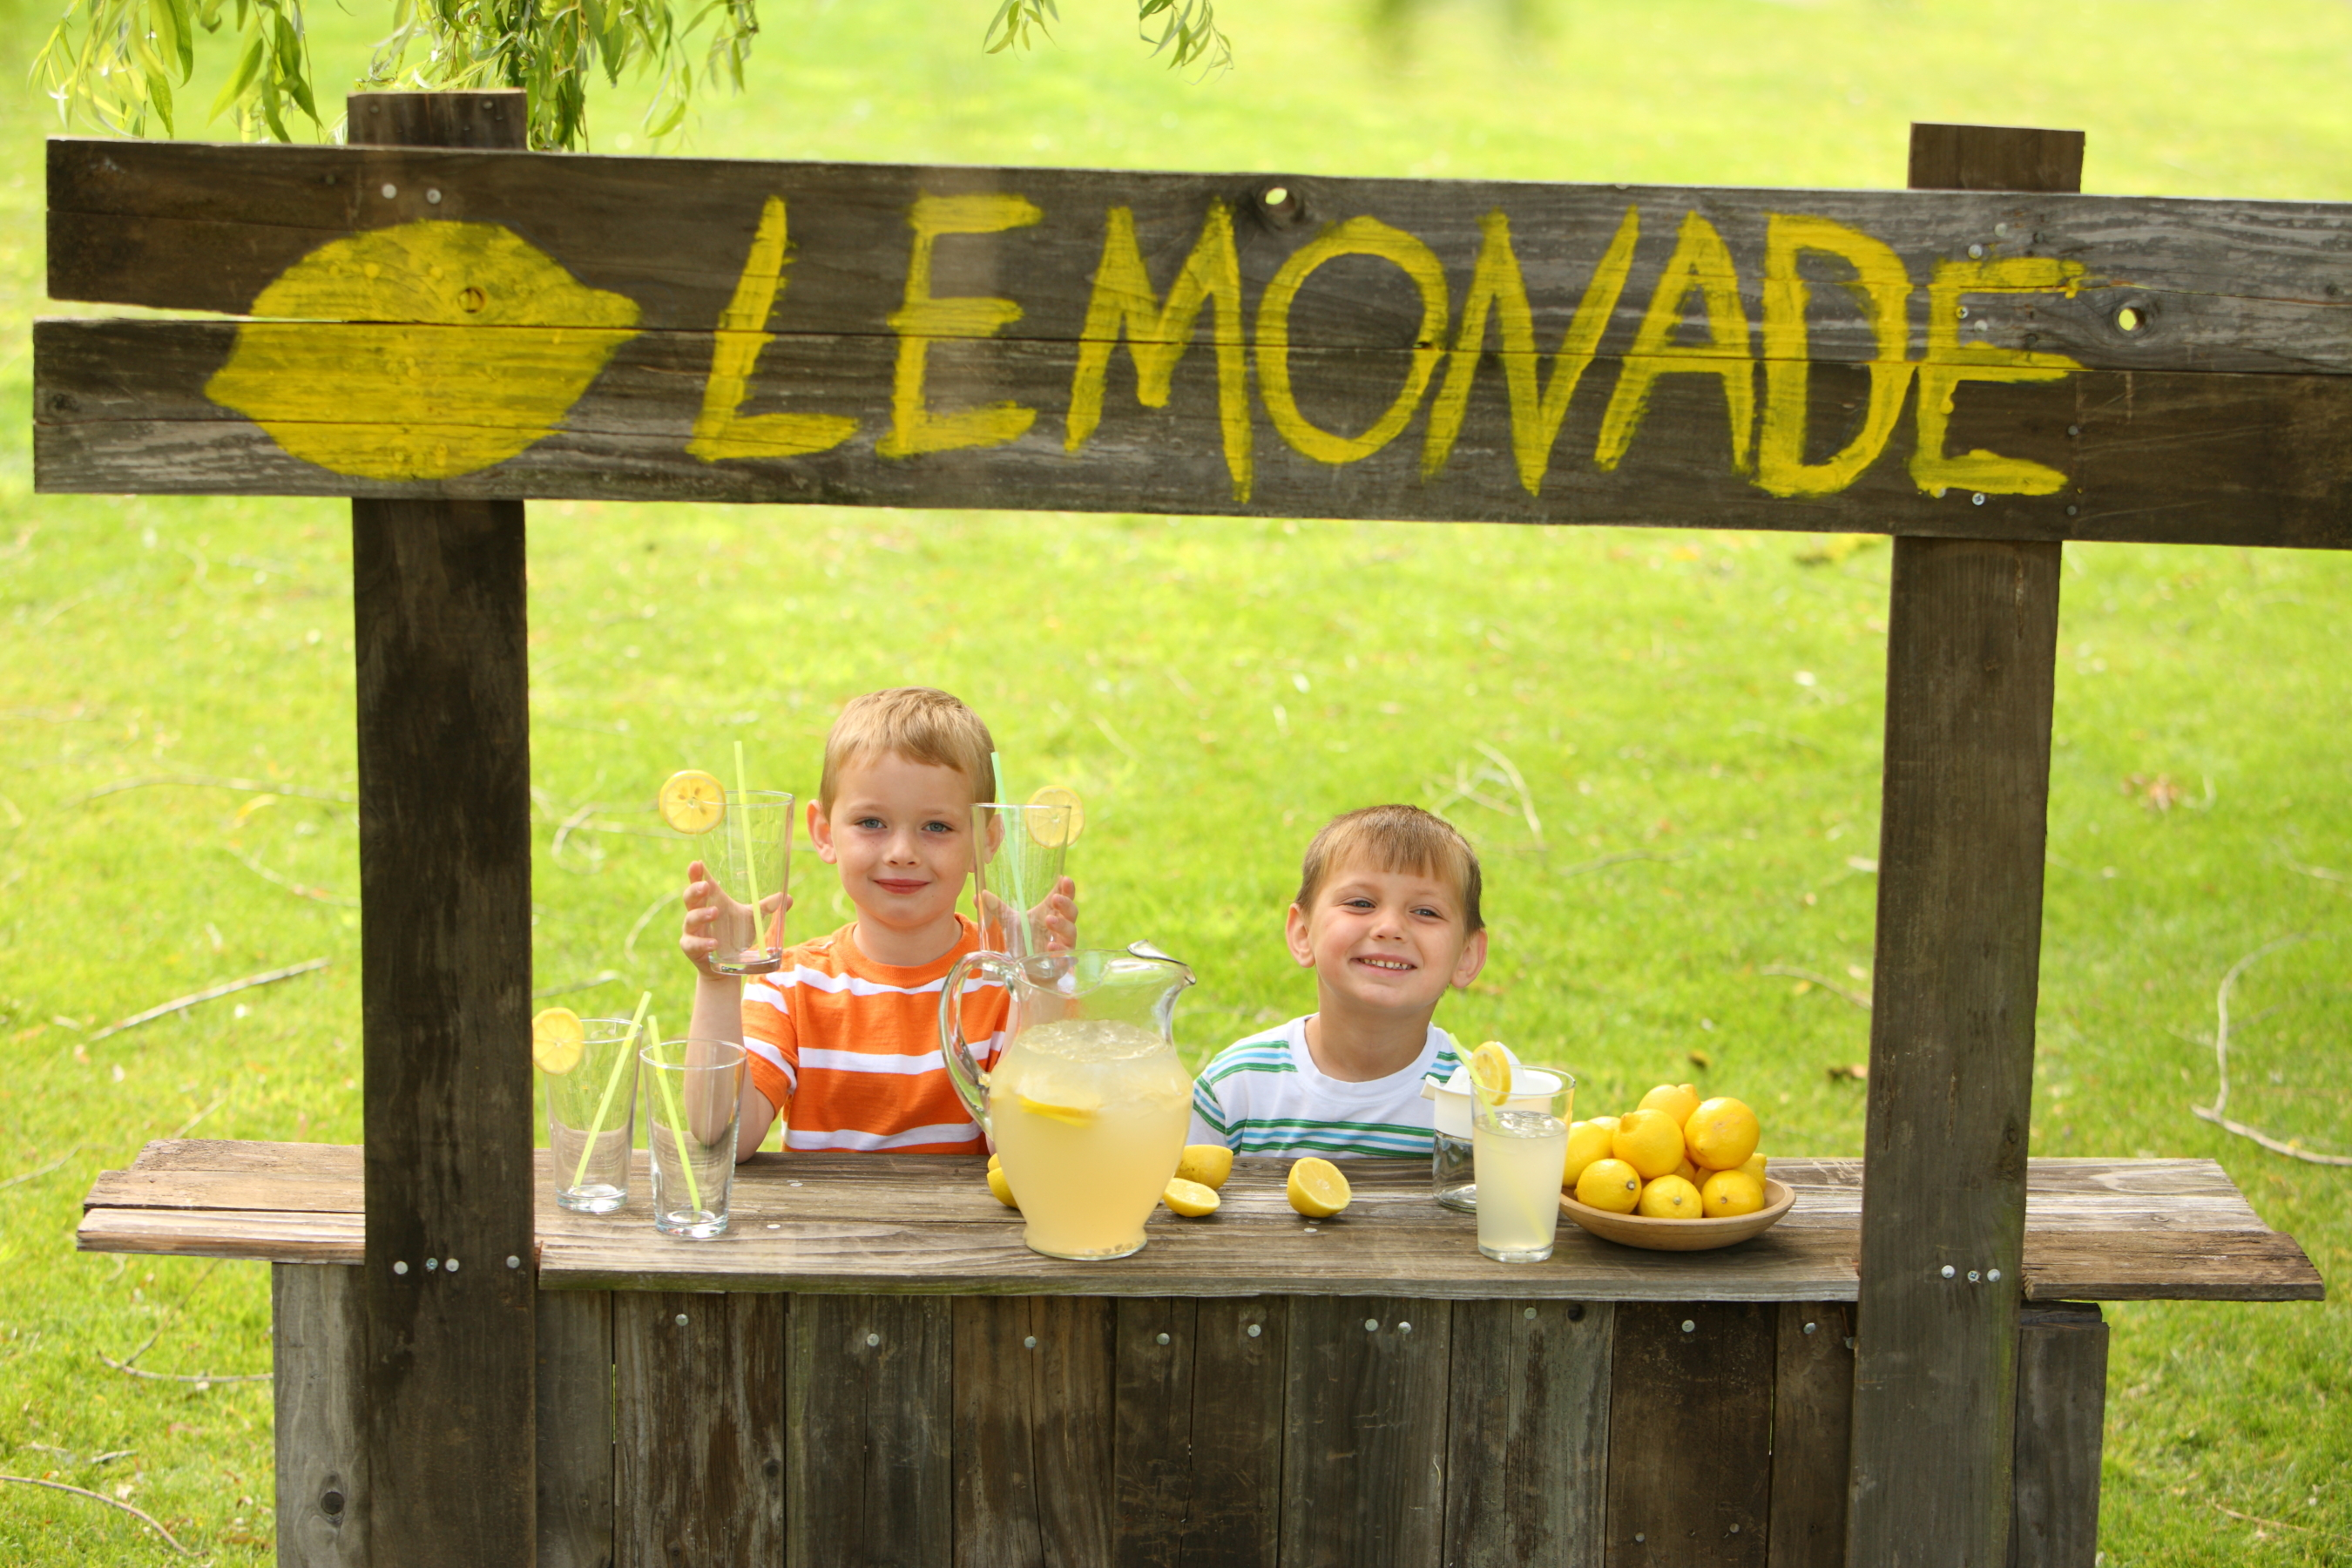 Irs To Crackdown On Scofflaw Lemonade Stand Operators The Return Of The Modern Philosopher